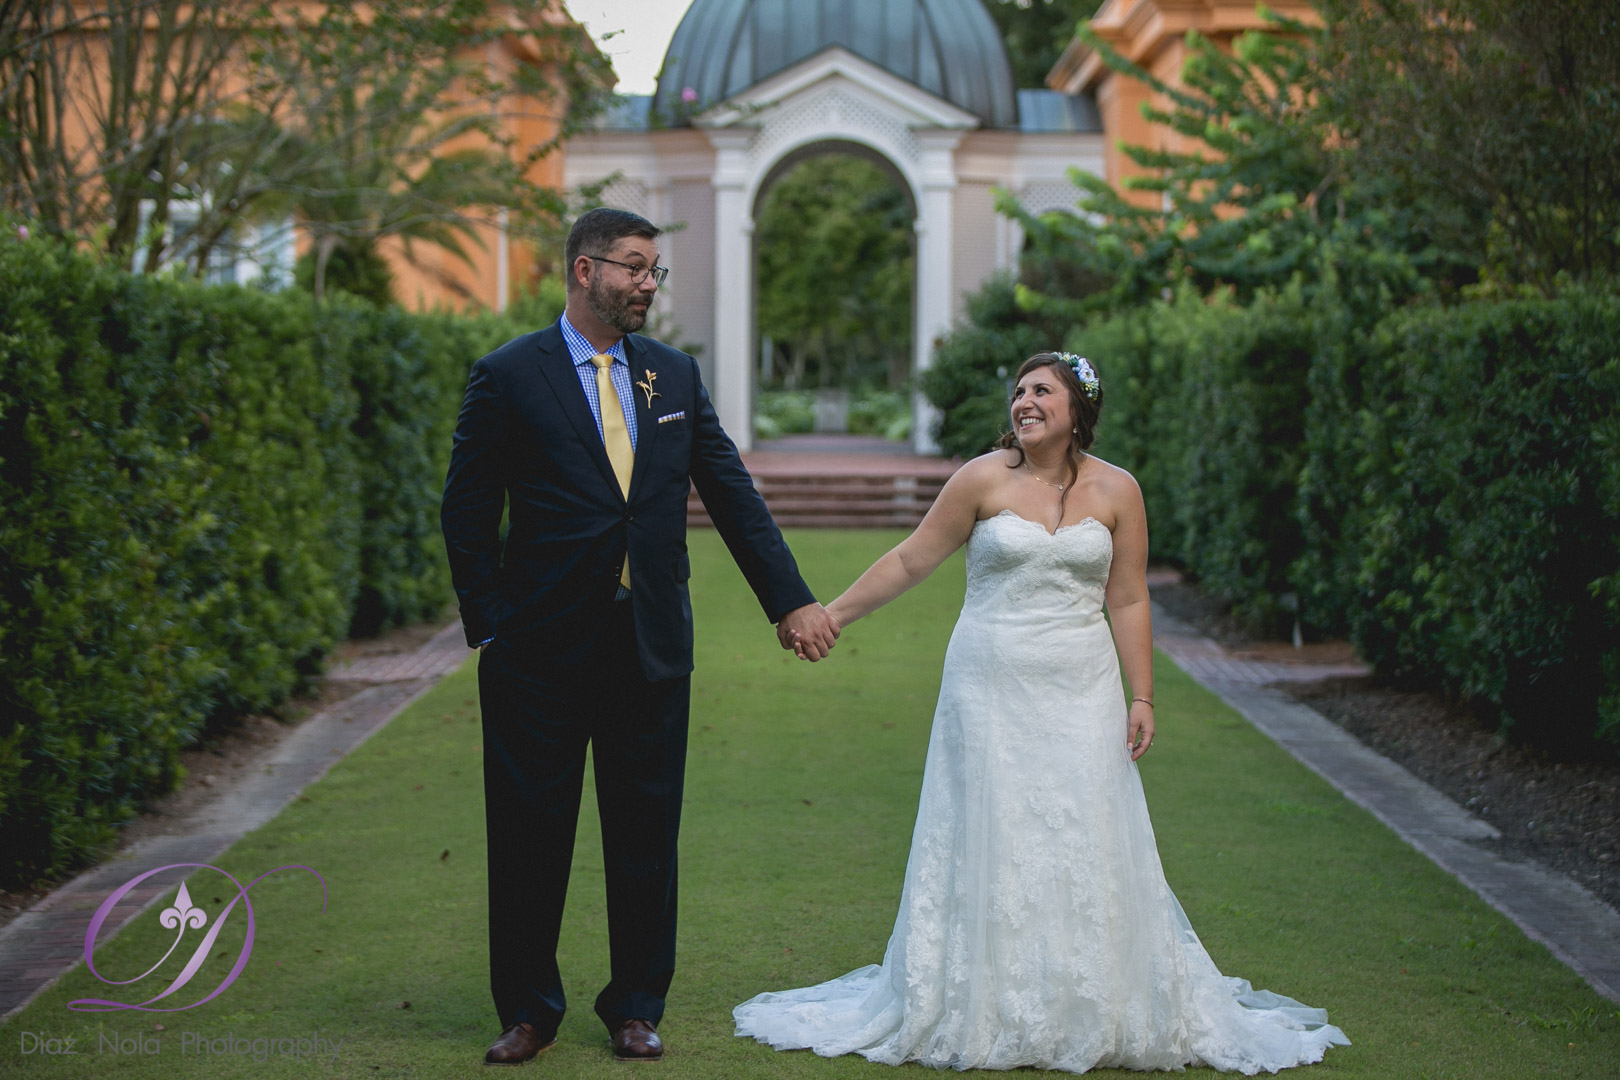 amanda-james-new-orleans-botanical-garden-wedding-4680-315